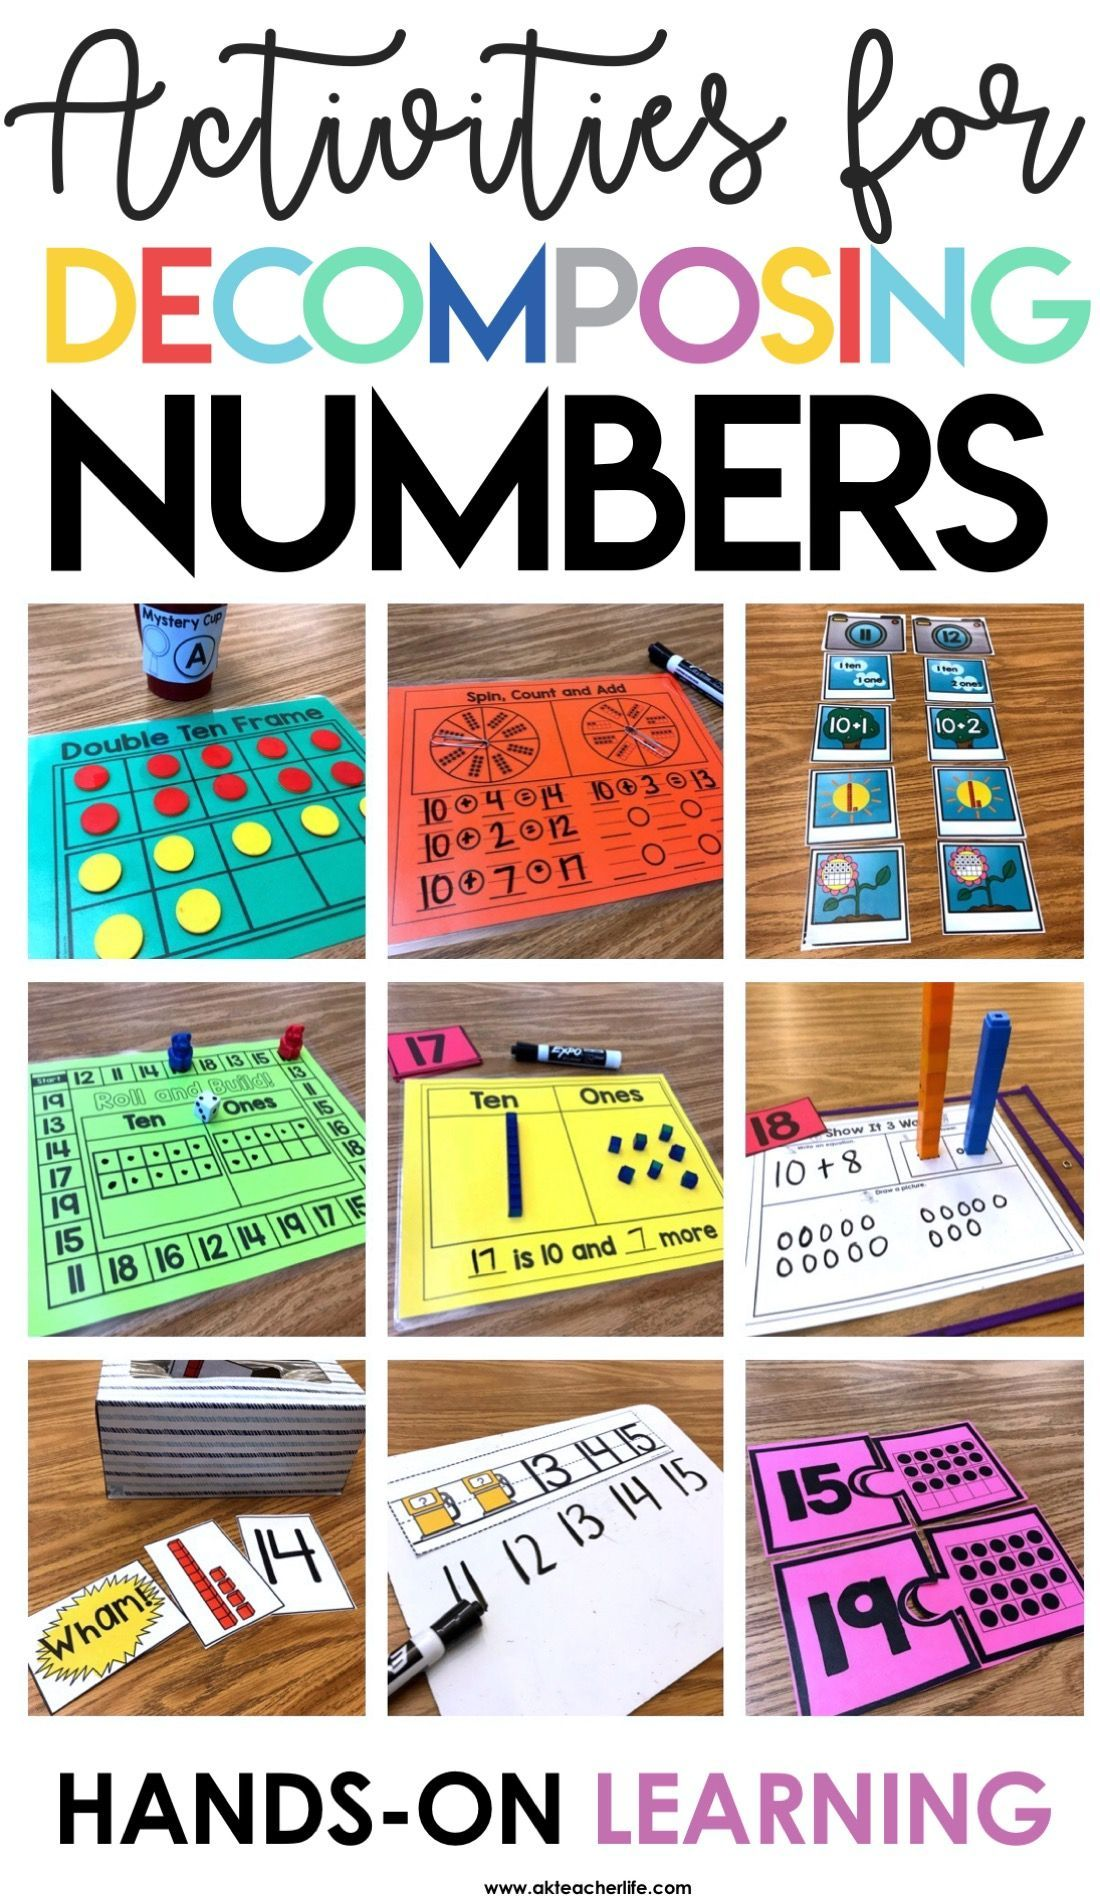 18 Hands On Activities For Decomposing Teen Numbers Into